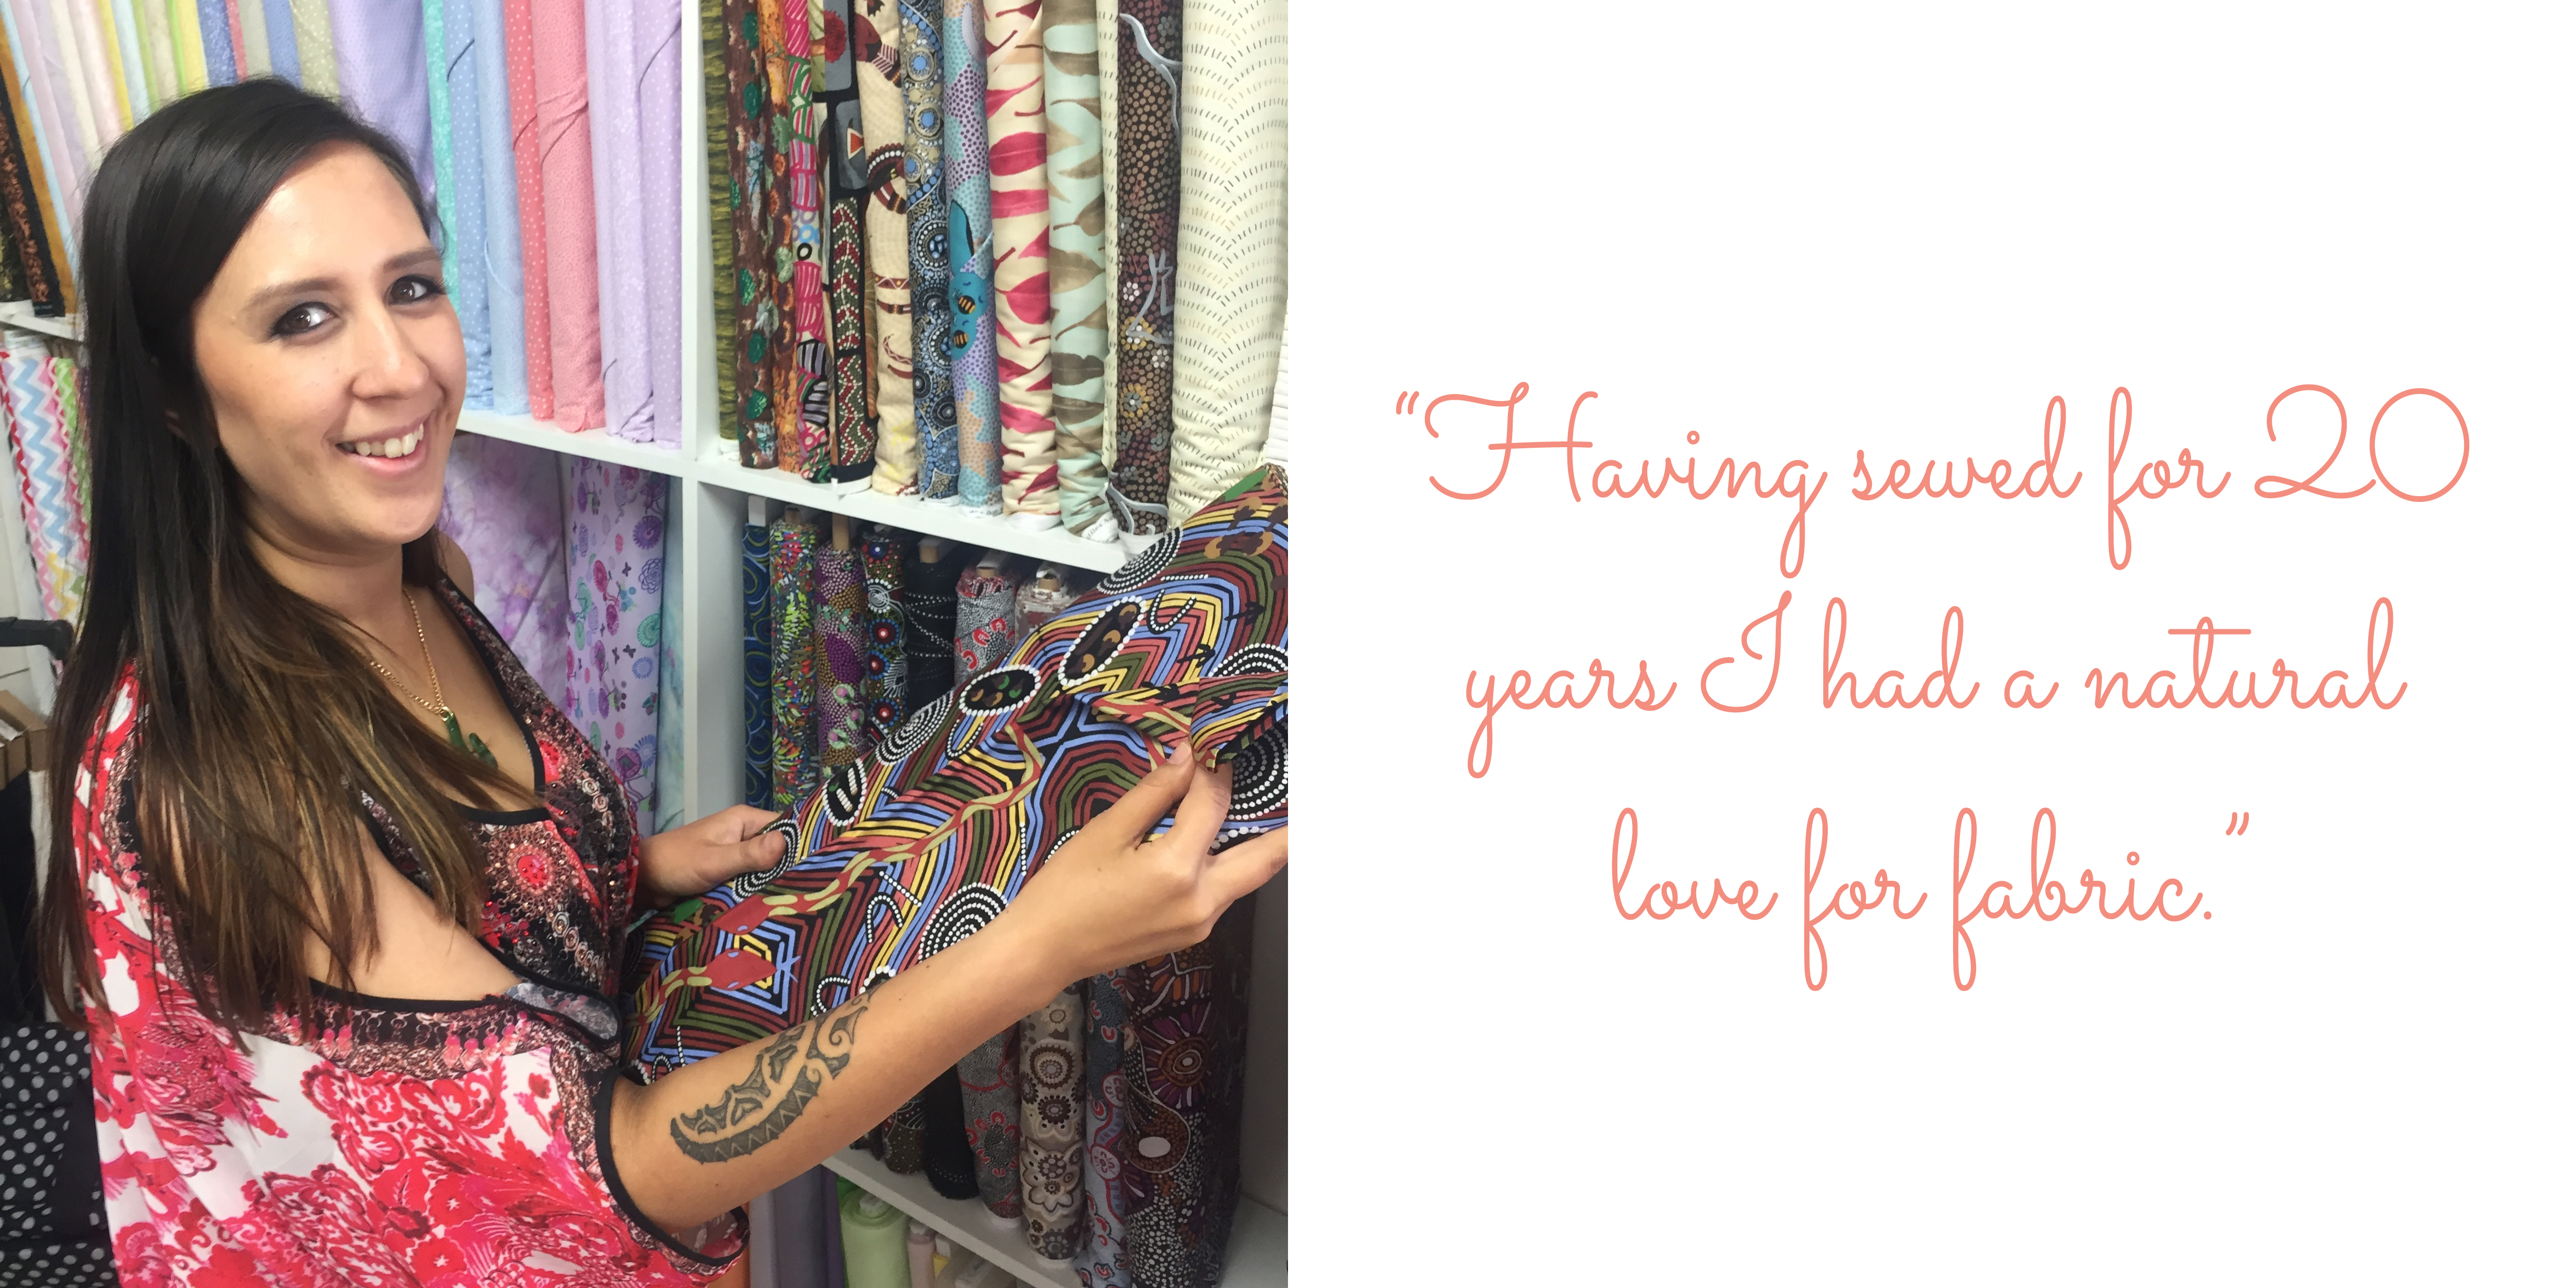 Orla sourcing indigenous fabrics at her favourite store in Mount Isa: 'Having sewed for 20 years I had a natural love for fabric.'